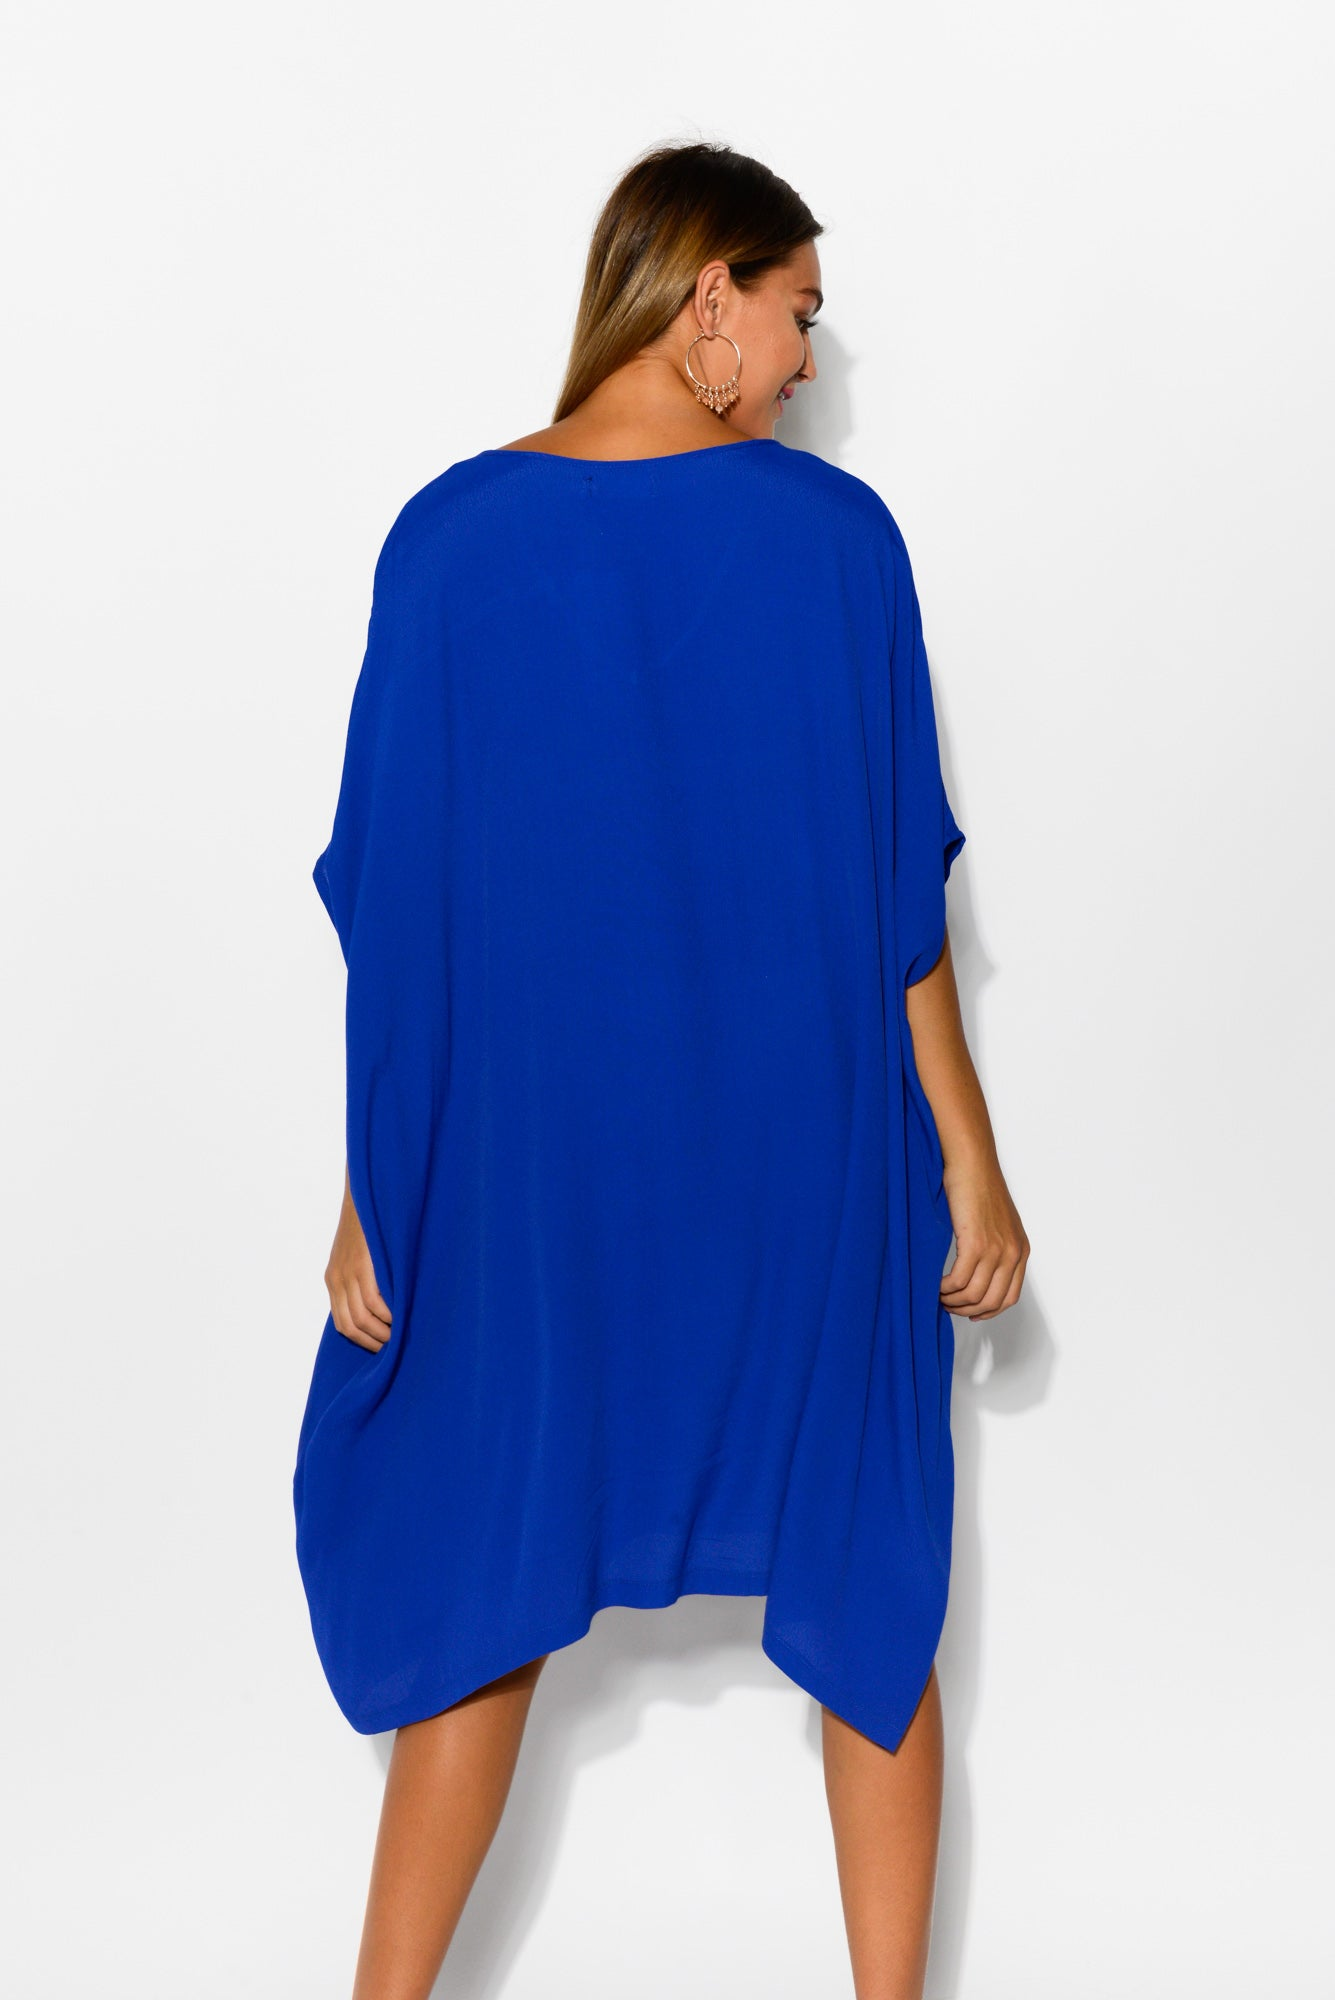 Tallie Cobalt Blue Drape Dress